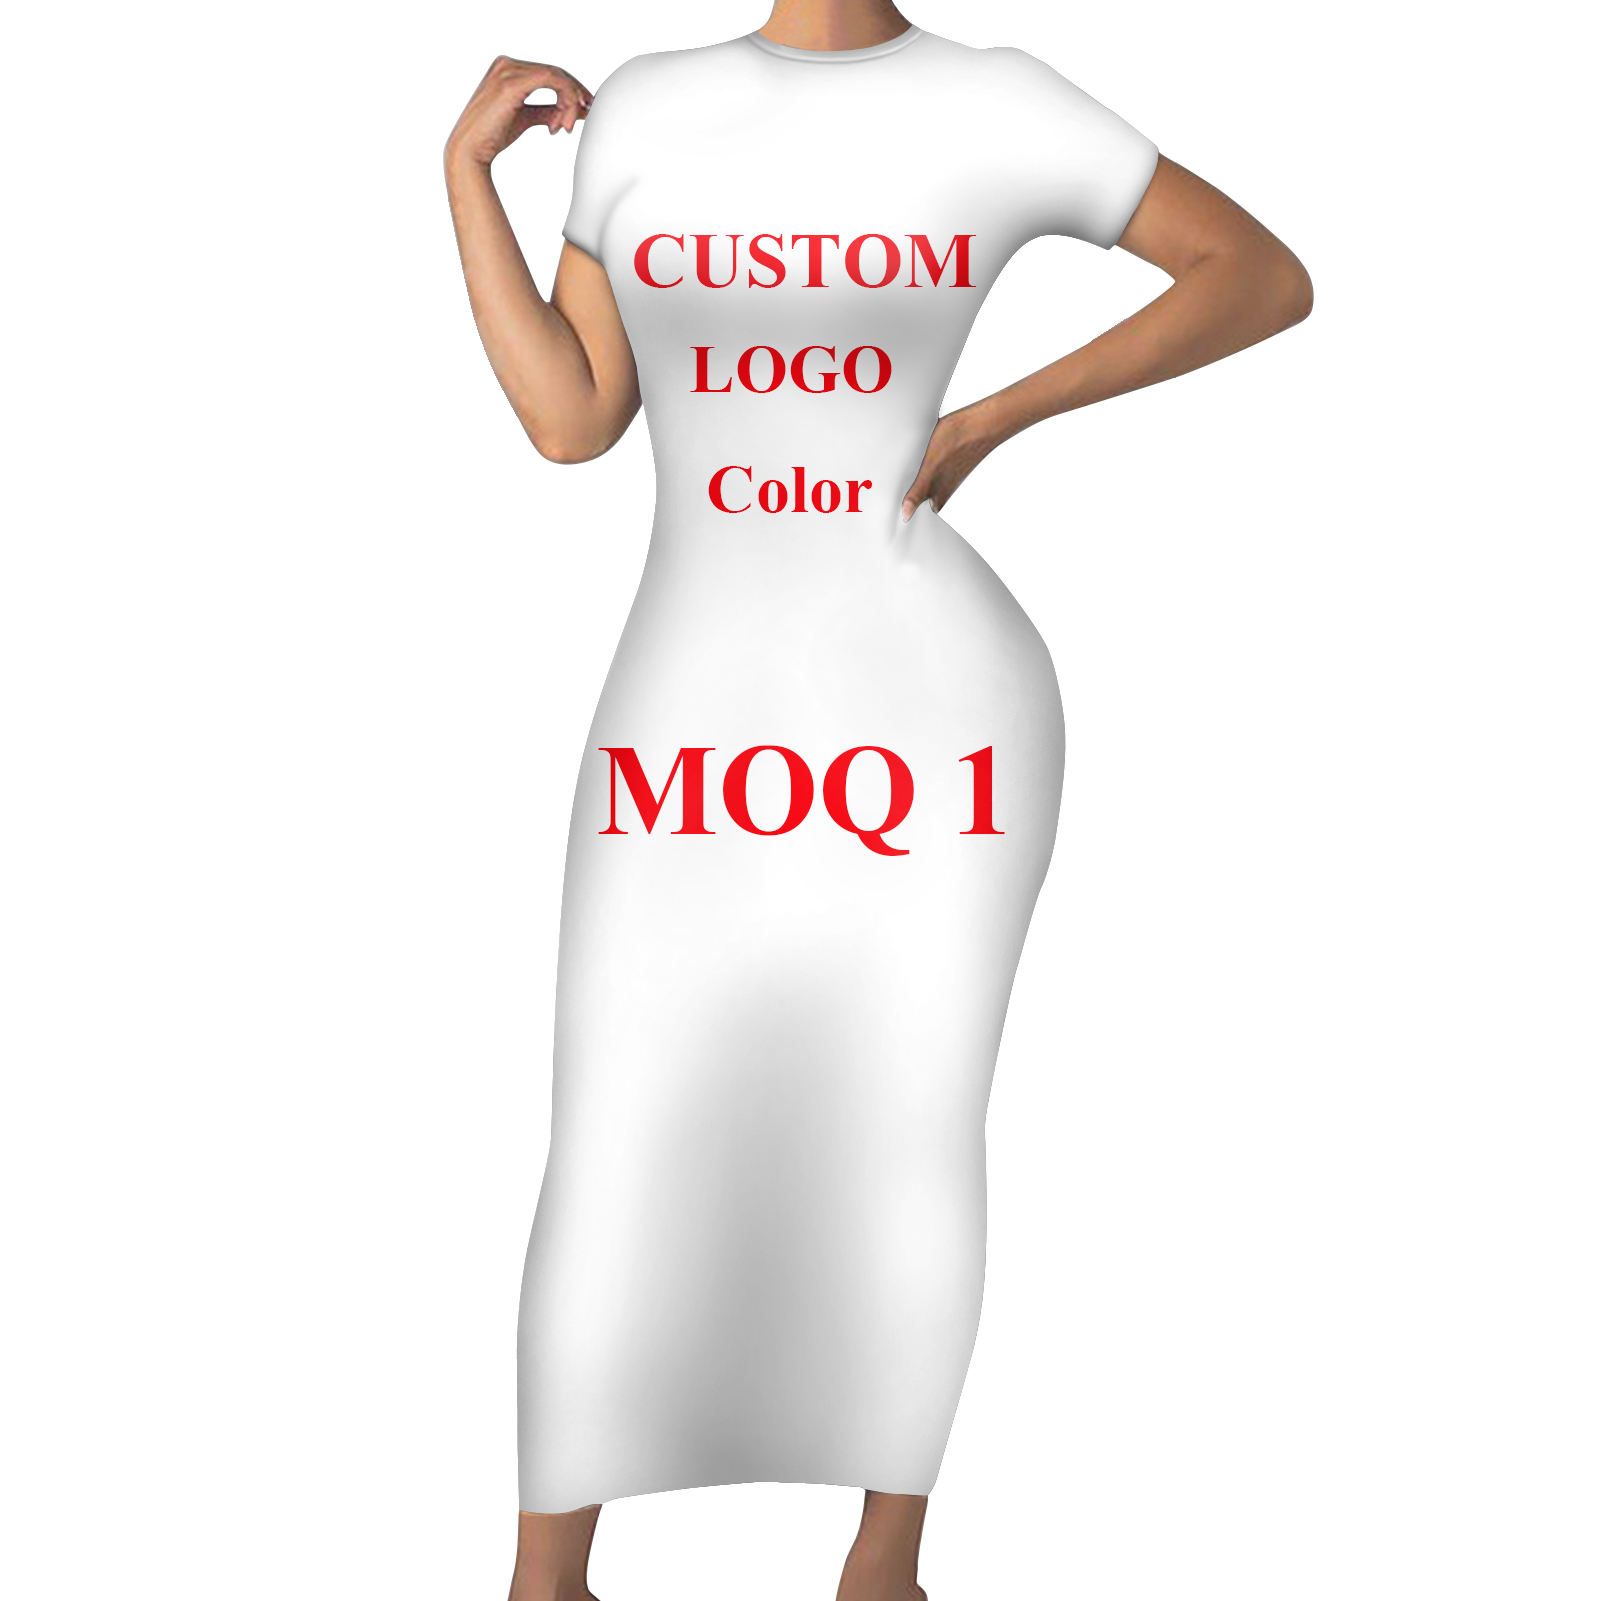 Sexy Women Dress Tight Mid-Length Short Sleeve Women Skirts Plus Dresses Custom Print/Logo/Image/Picture Wholesale Lady Clothing